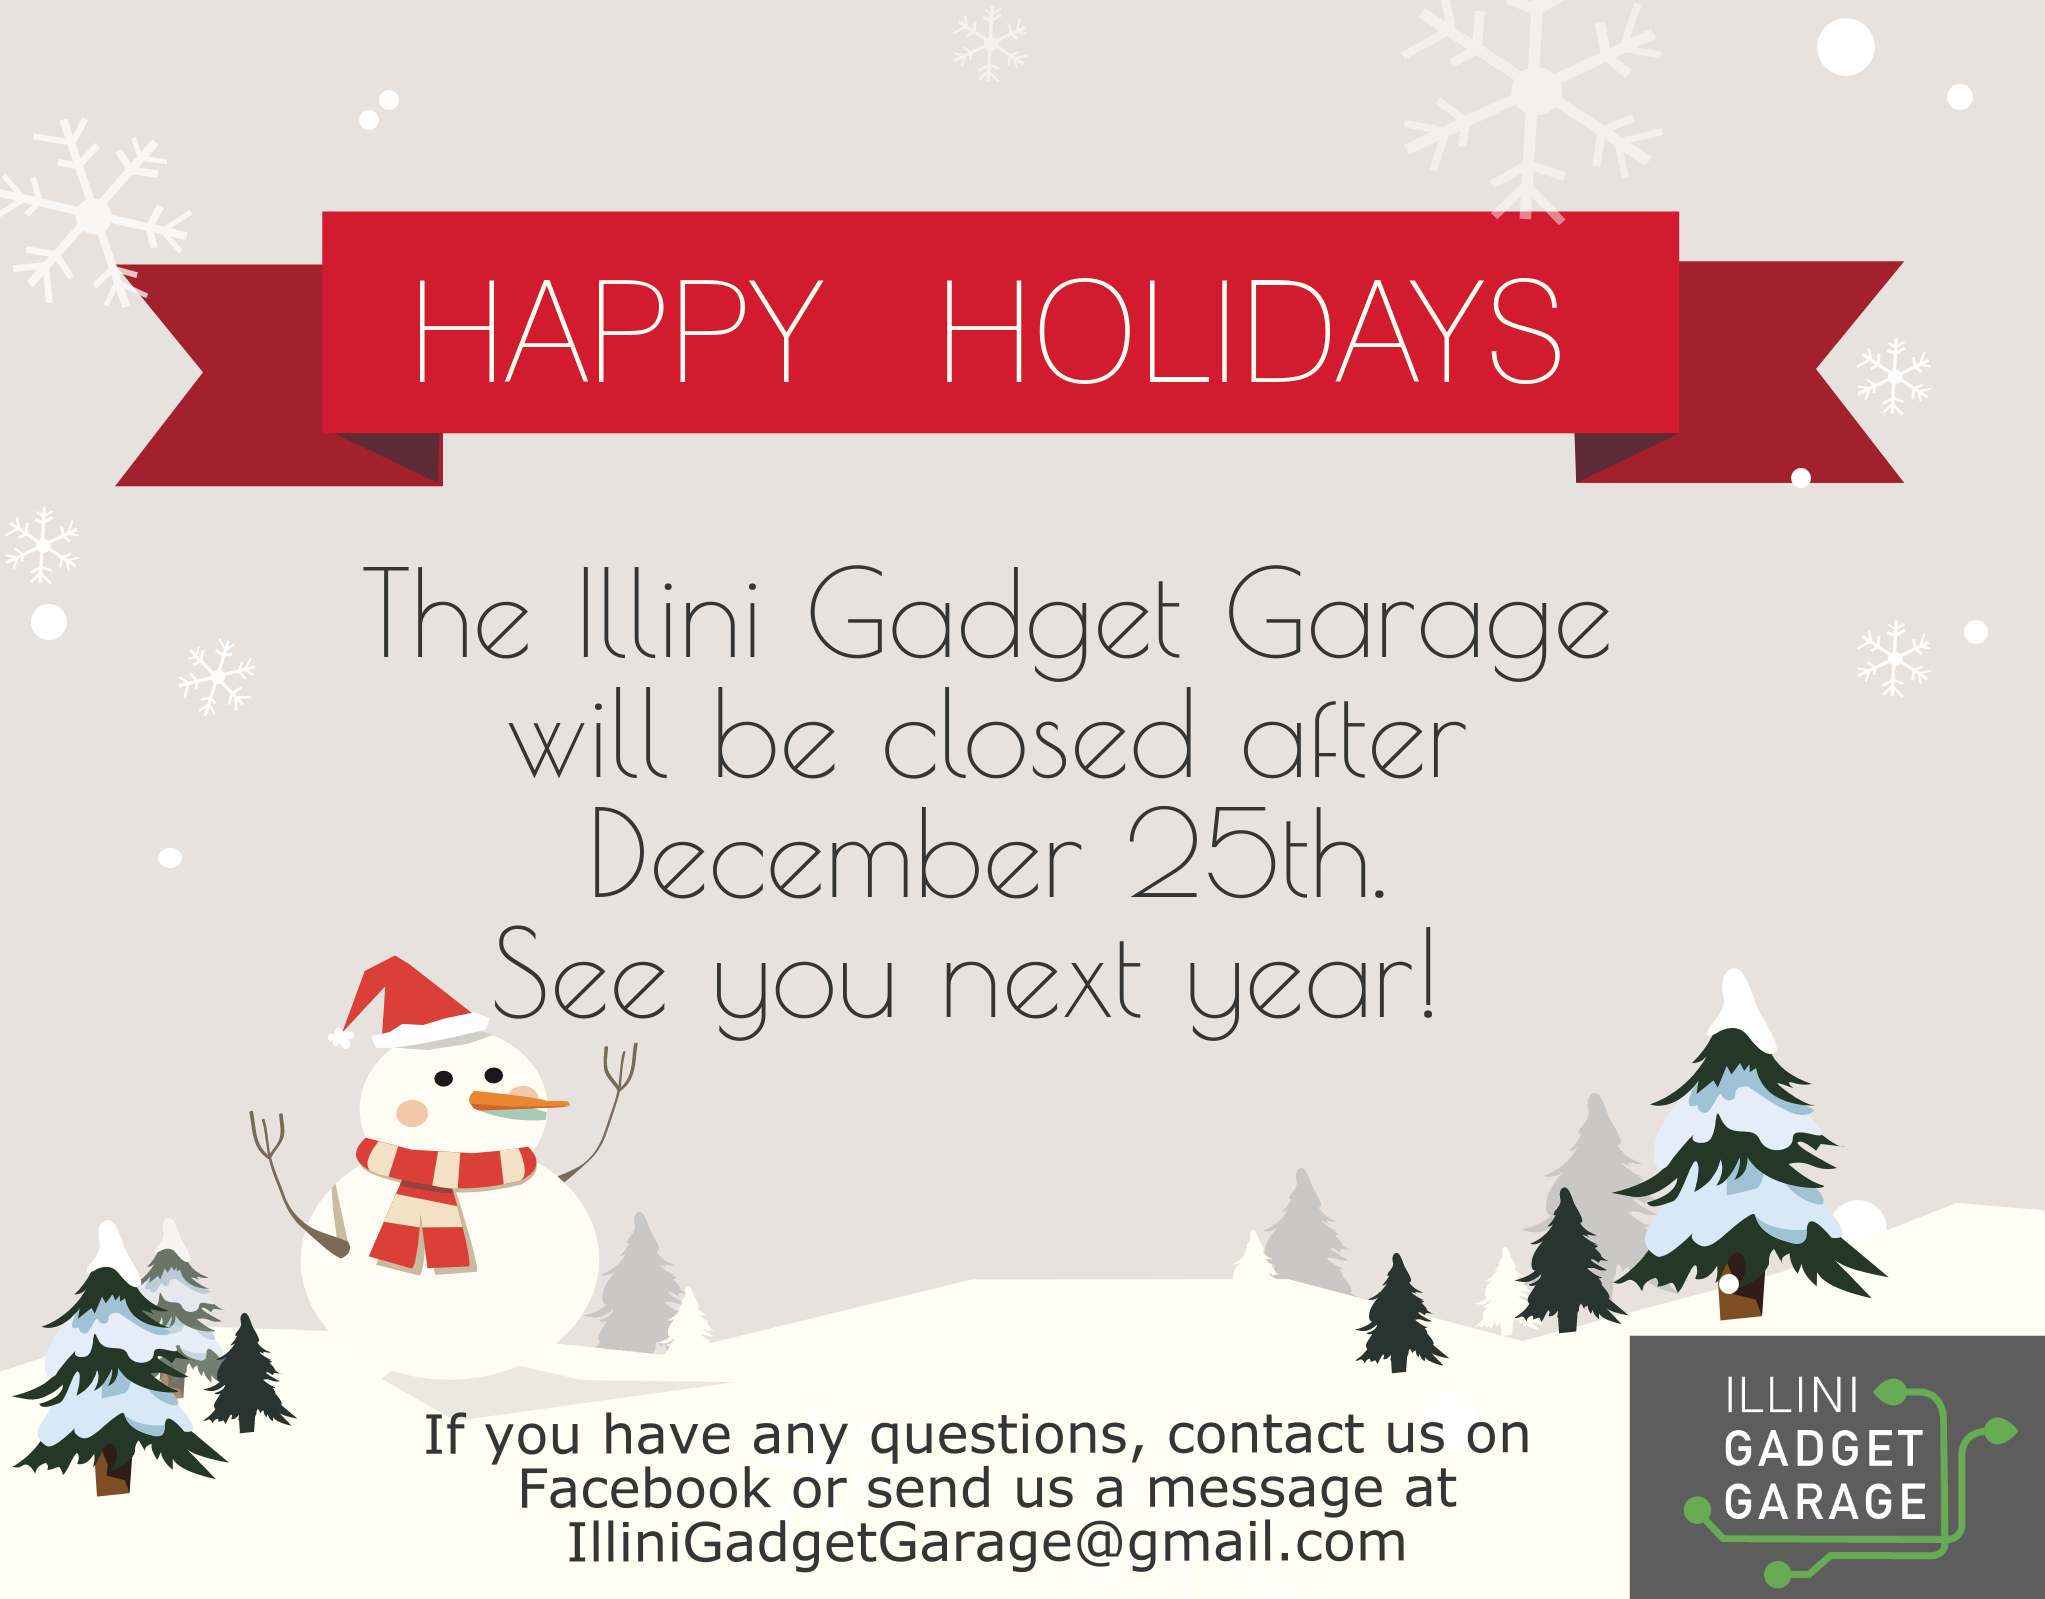 Happy Holidays and a Happy New Year! – Illini Gadget Garage